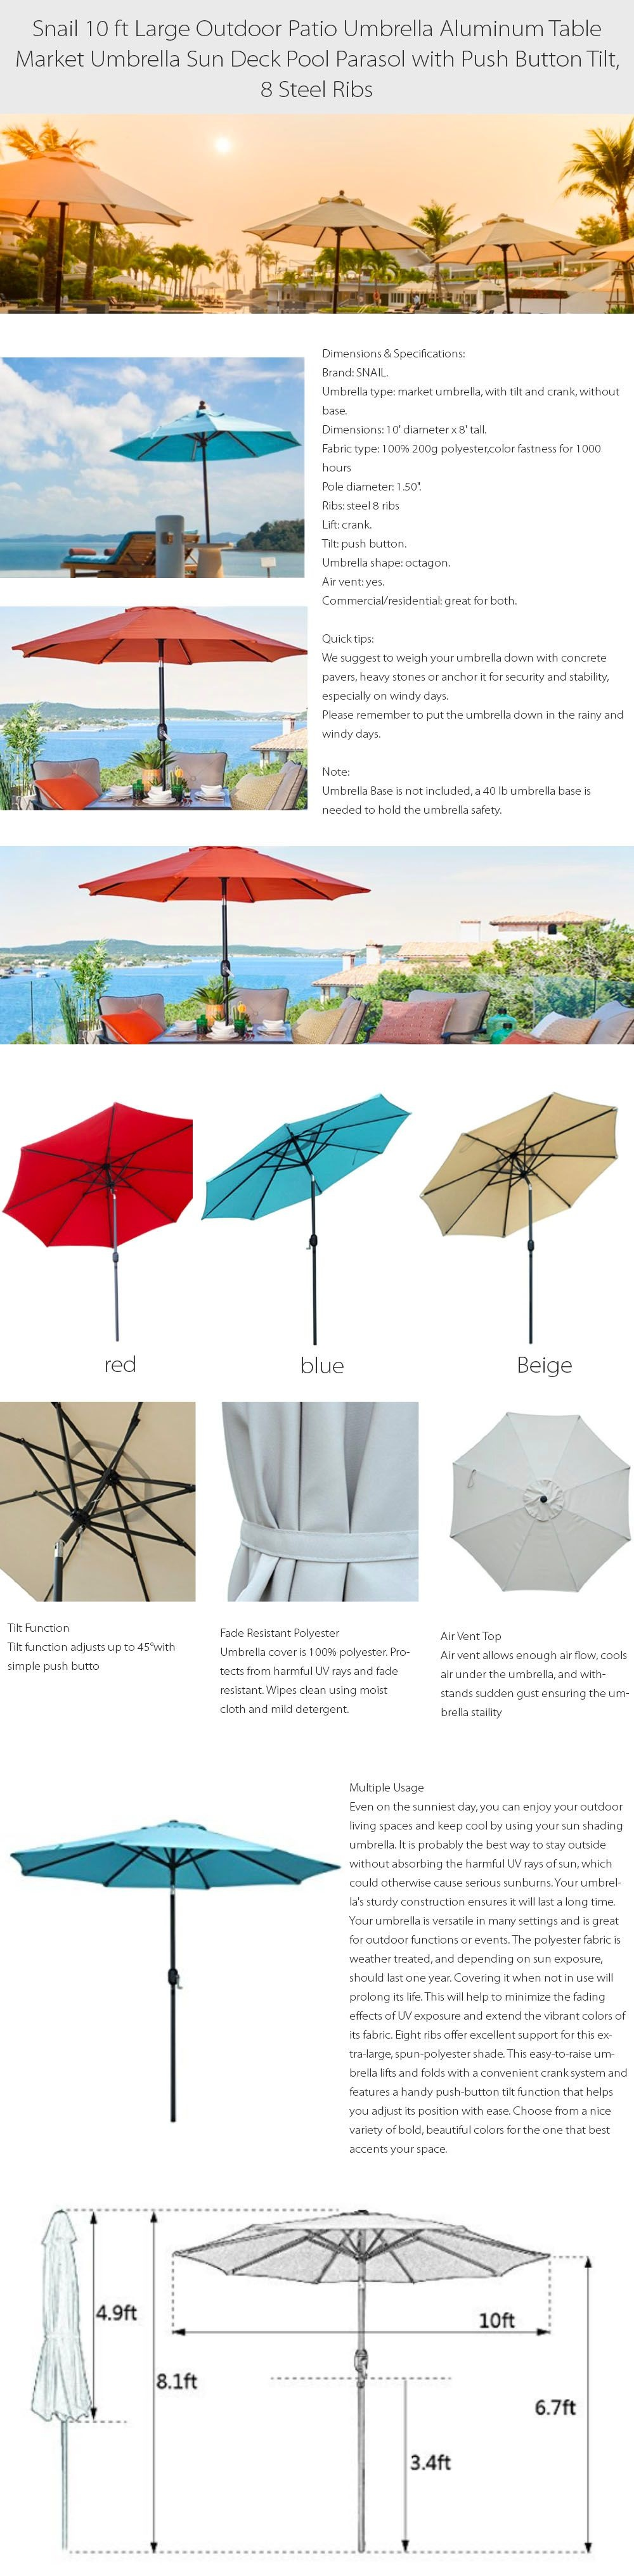 10 ft Large Outdoor Umbrella 8 Steel Ribs